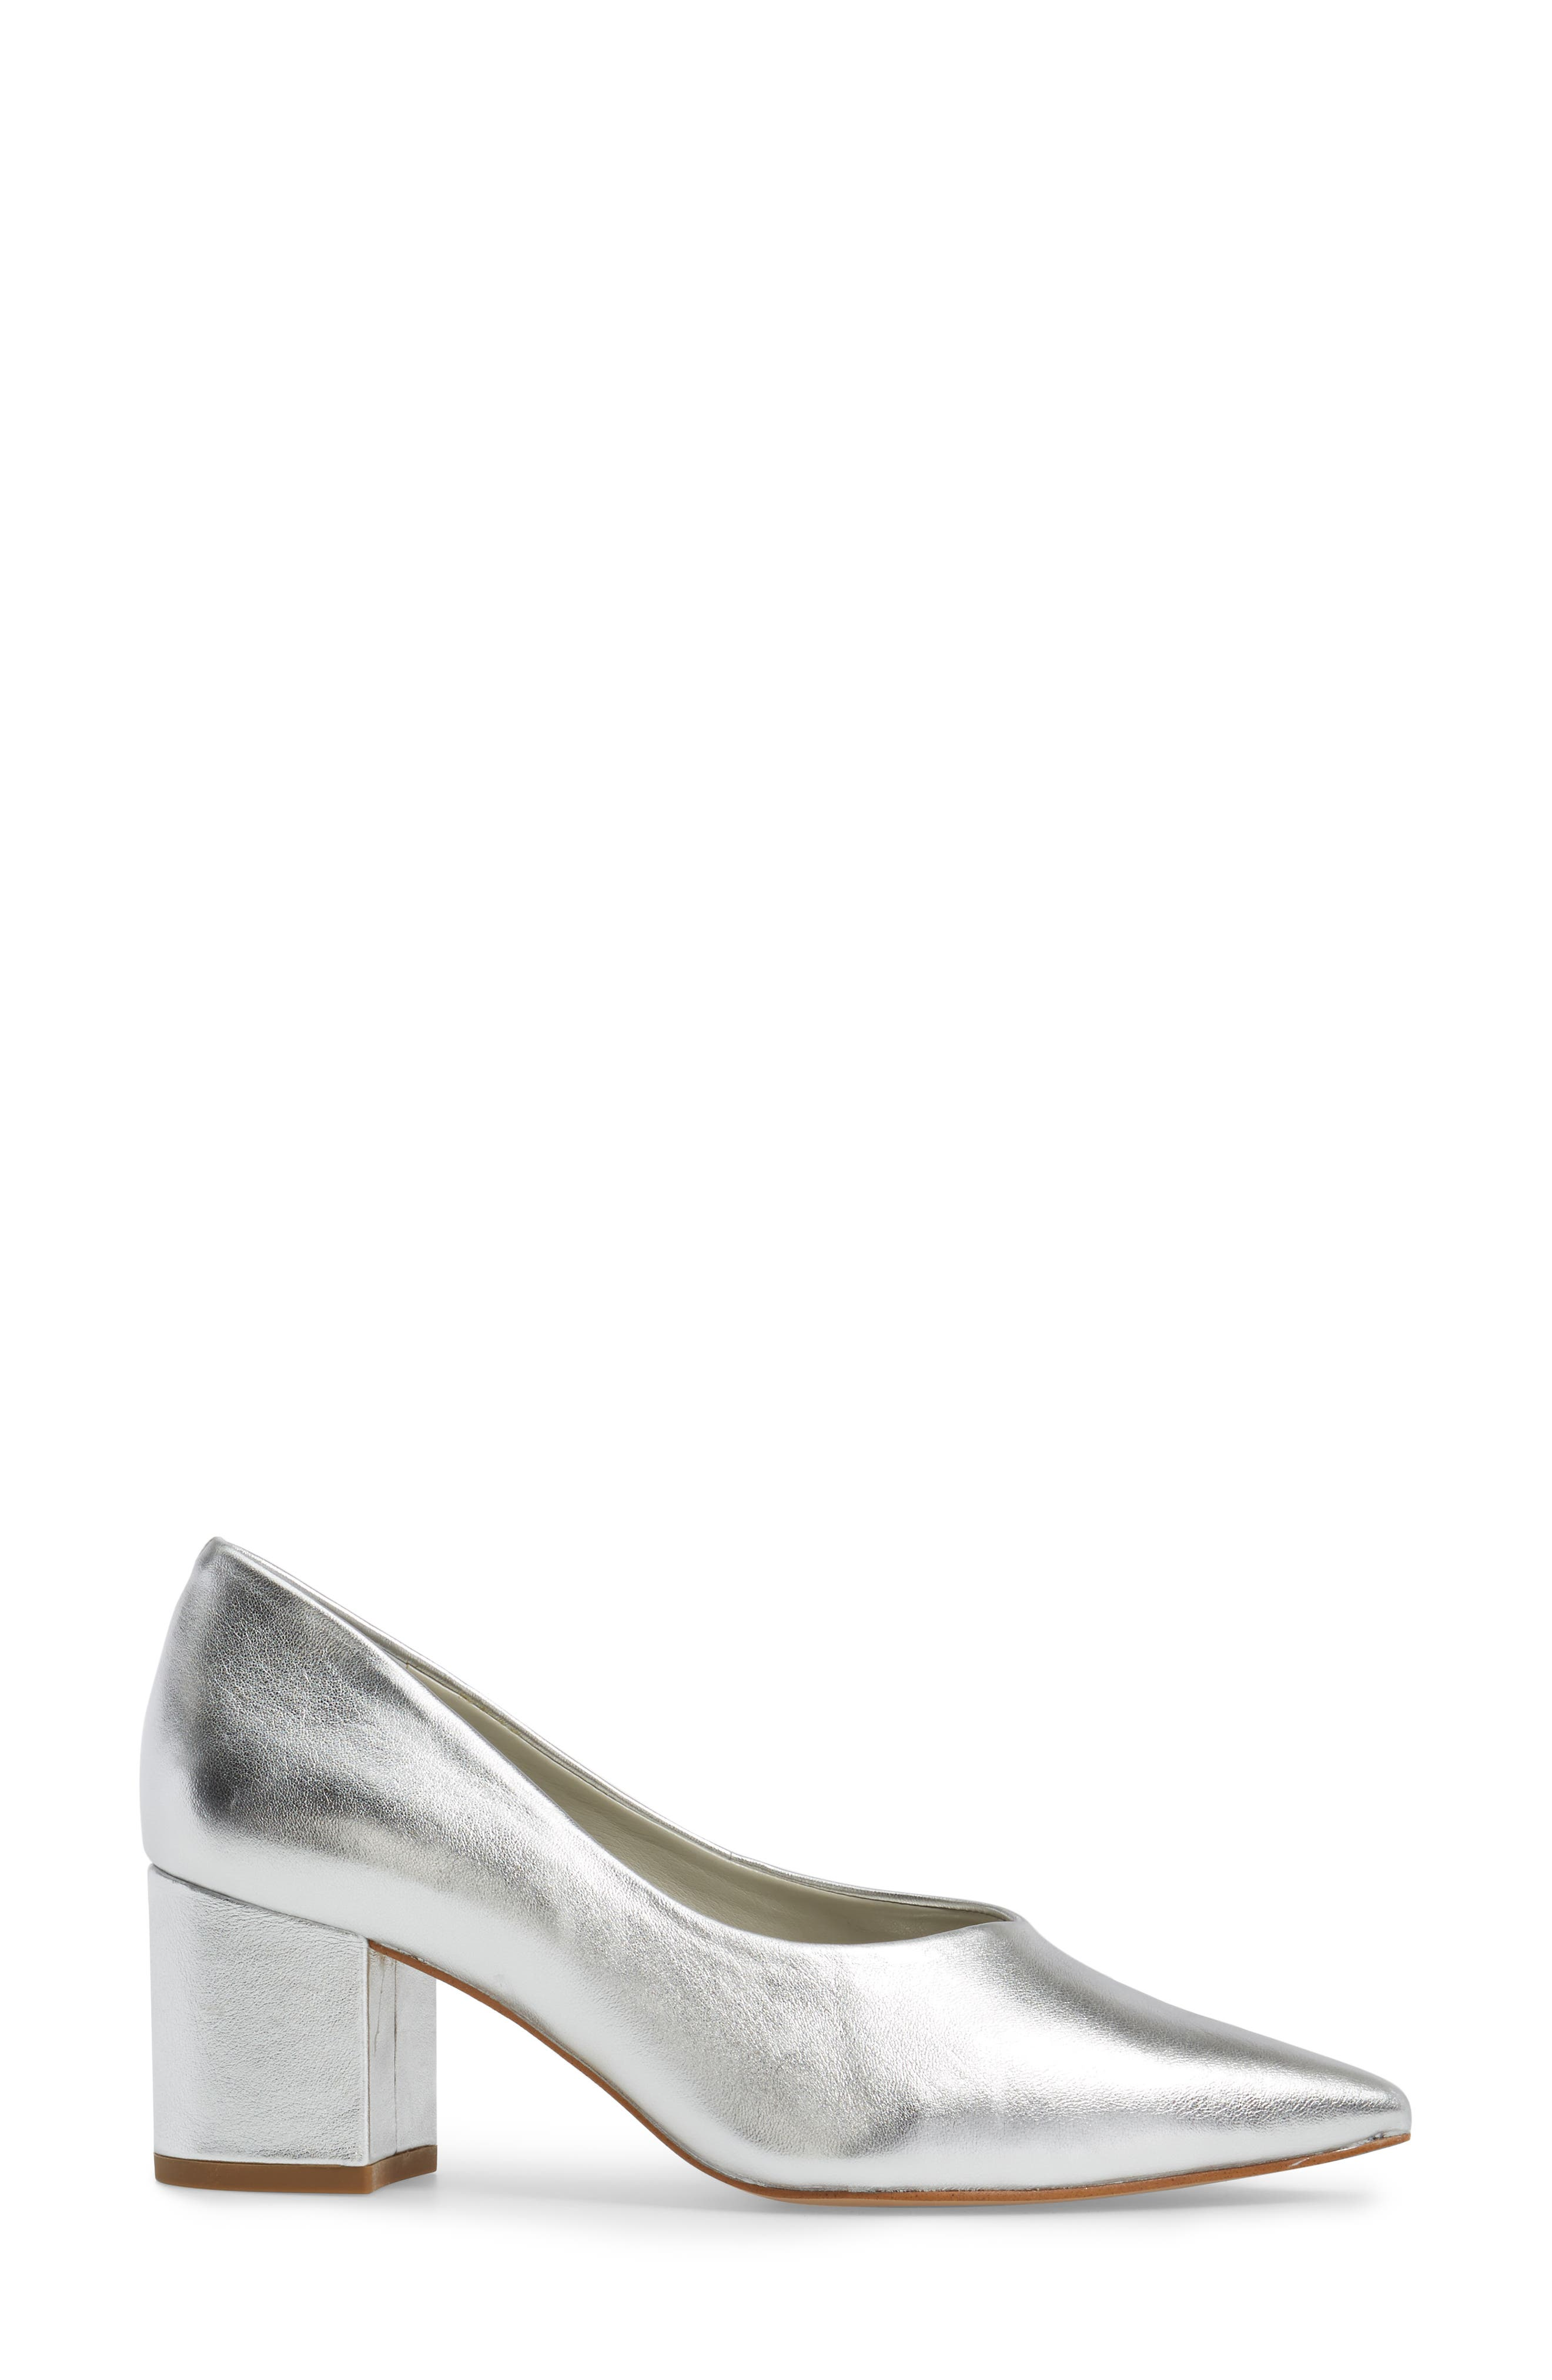 Jact Pointy Toe Pump,                             Alternate thumbnail 3, color,                             Bright Silver Leather